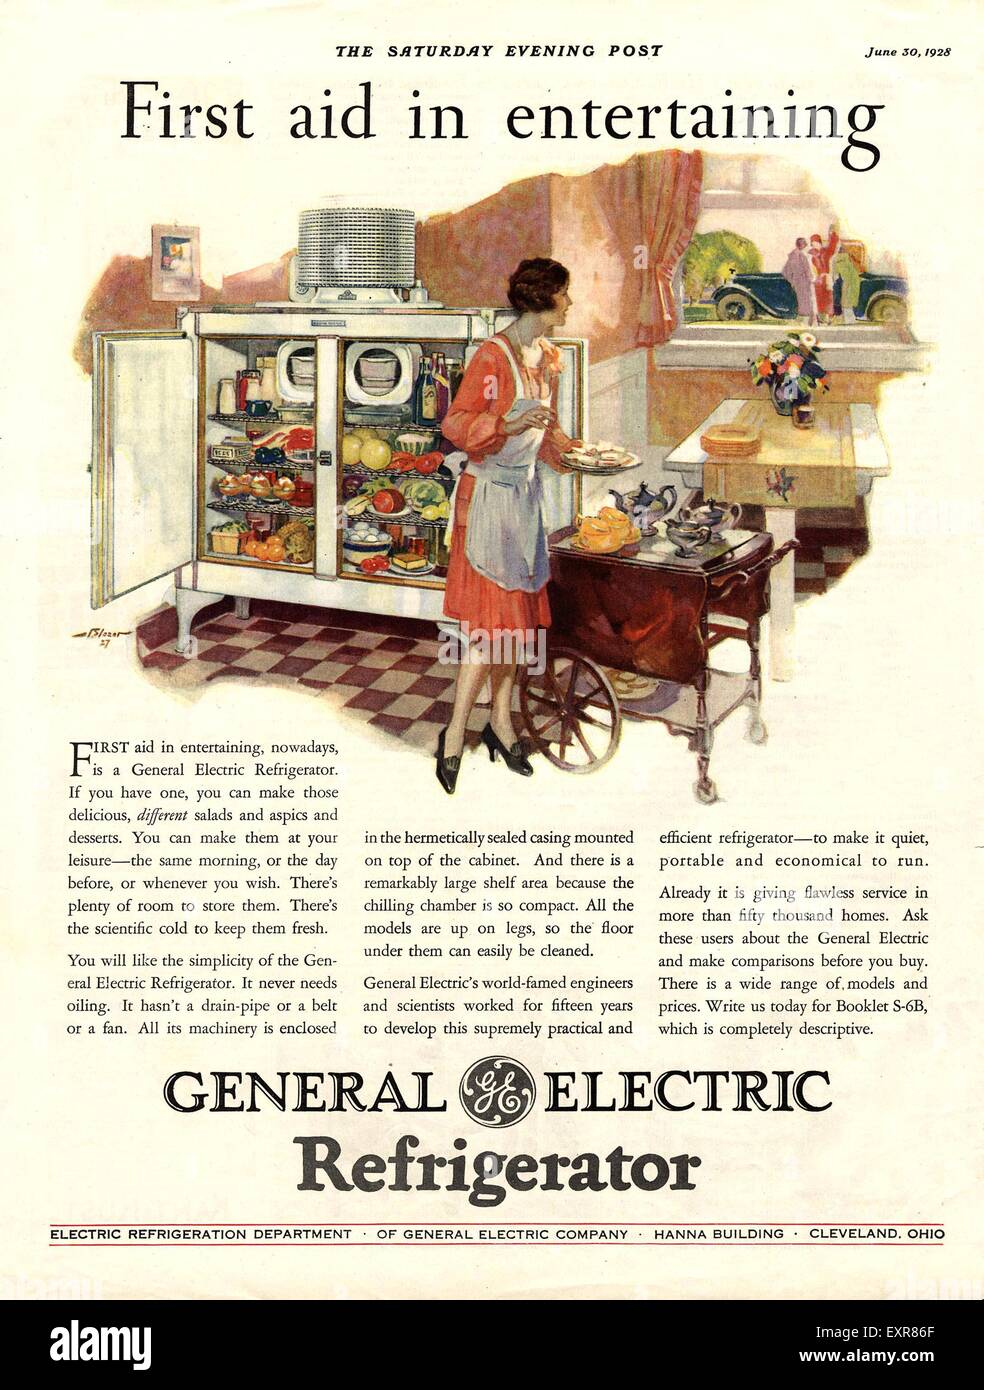 appliances 1920s stock photos appliances 1920s stock images alamy Running a 100 Amp Panel Form a House 200 Amp Panel 1920s usa general electric magazine advert stock image